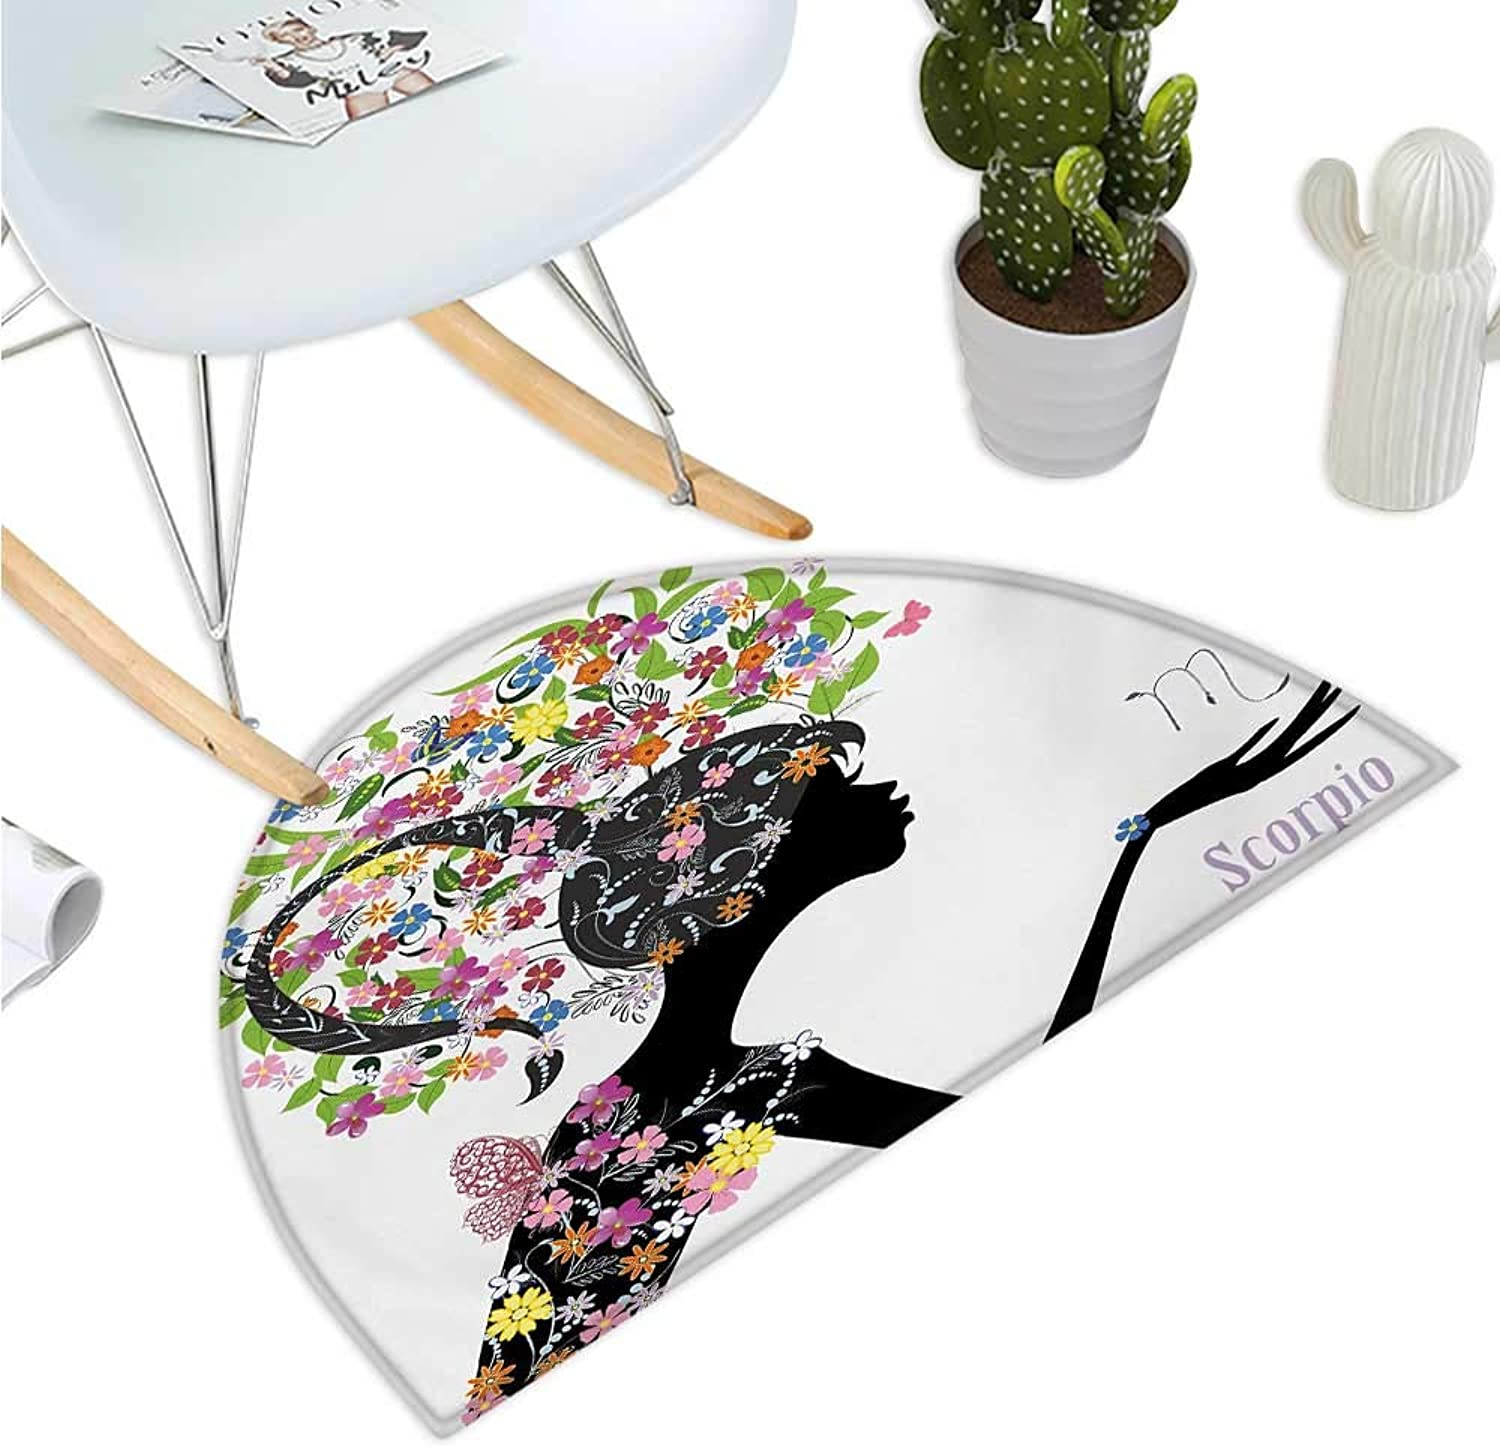 Zodiac Scorpio Semicircle Doormat Fashion Girl Silhouette with colorful Blossoming Floral Dress and Hairstyle Entry Door Mat H 47.2  xD 70.8  Multicolor